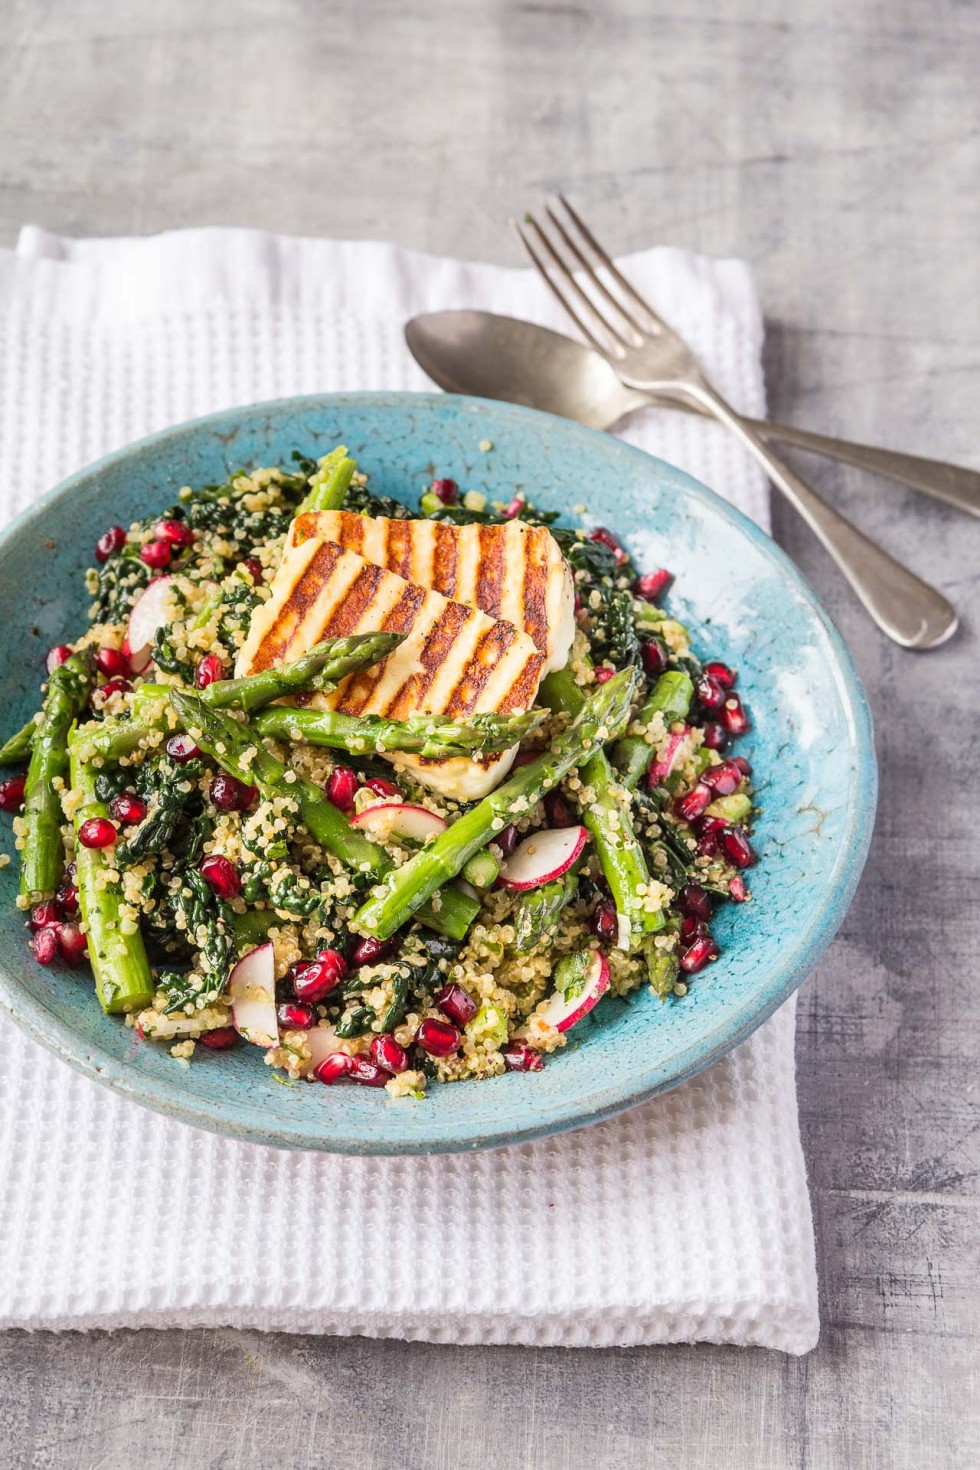 Quinoa 'tabbouleh' with asparagus, halloumi, kale, pomegranate and fresh herbs